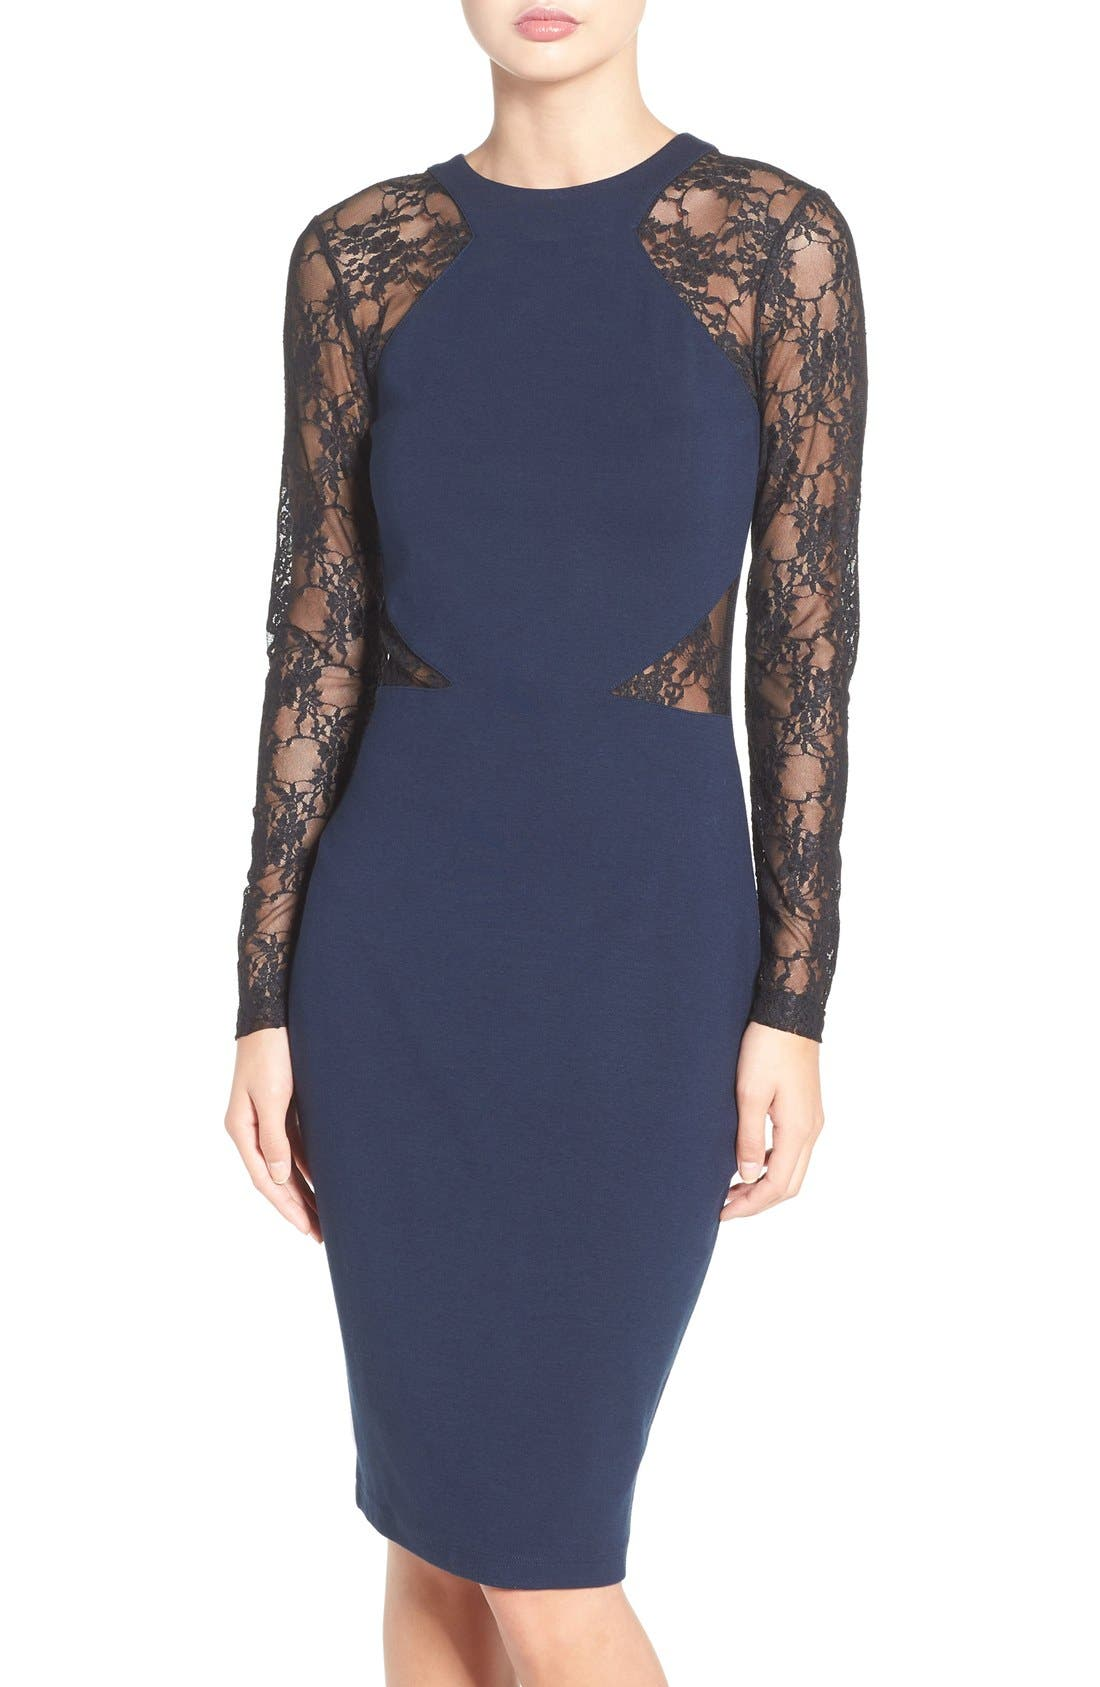 Alternate Image 1 Selected - French Connection 'Viven' Lace Long Sleeve Sheath Dress